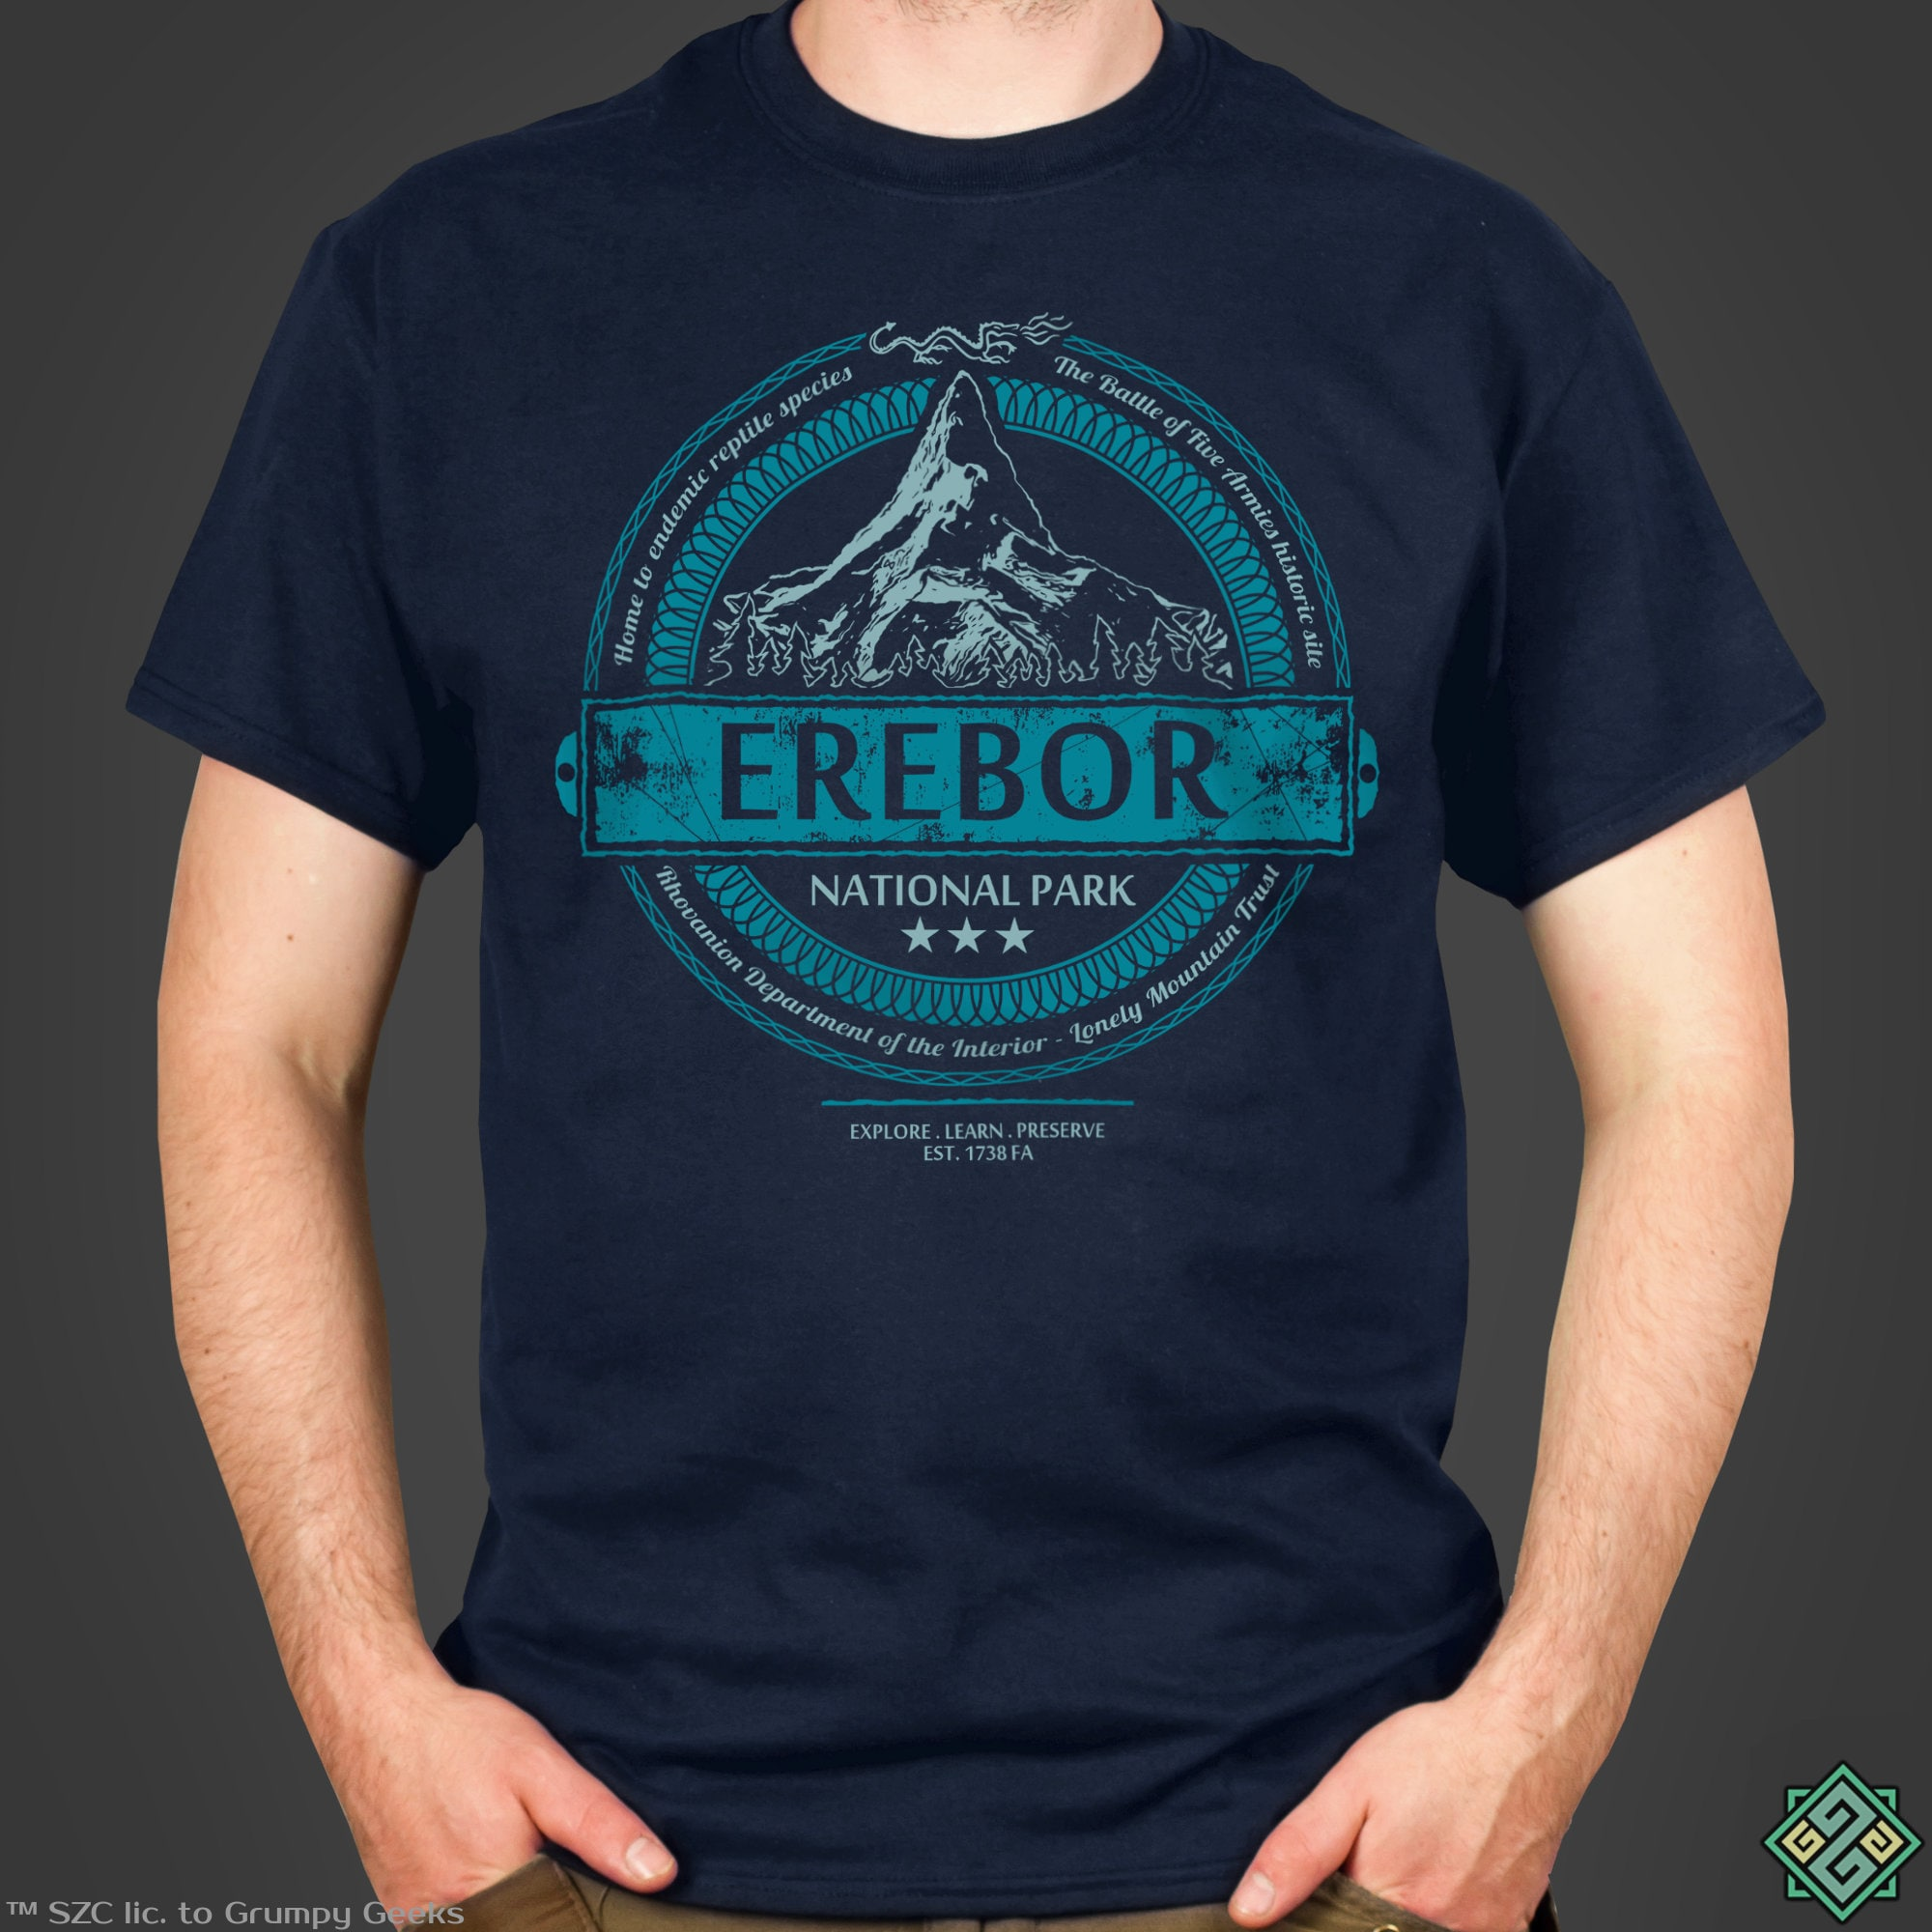 EREBOR National Park T-Shirt Middle Earth Lord Of The Rings The Hobbit